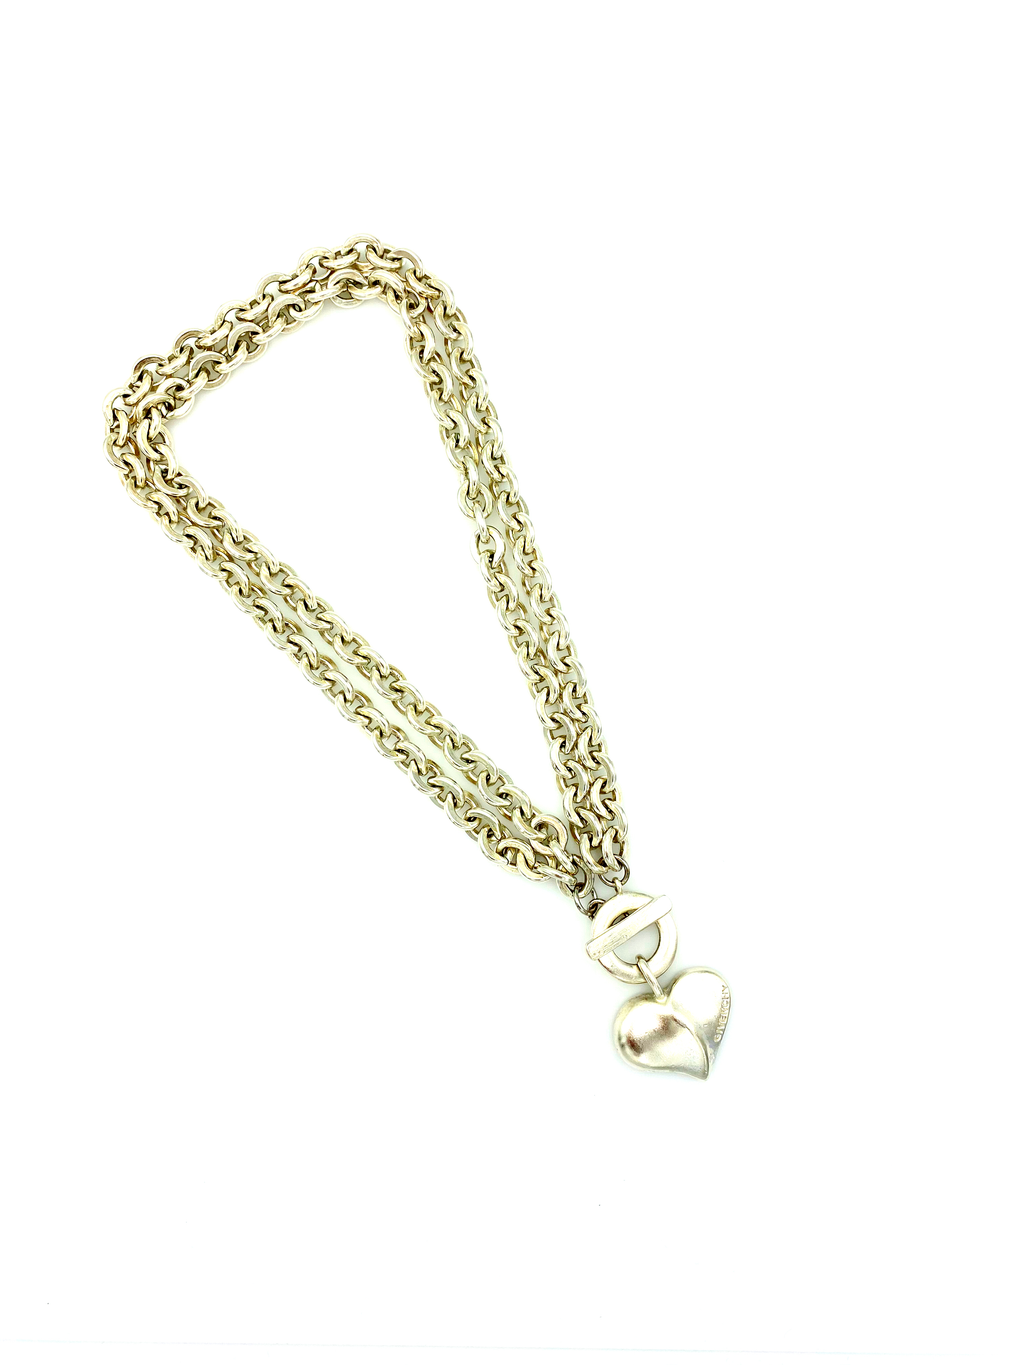 Givenchy Matt Silver Double Chain Heart Vintage Pendant-Necklaces & Pendants-Givenchy-[trending designer jewelry]-[givenchy jewelry]-[Sustainable Fashion]